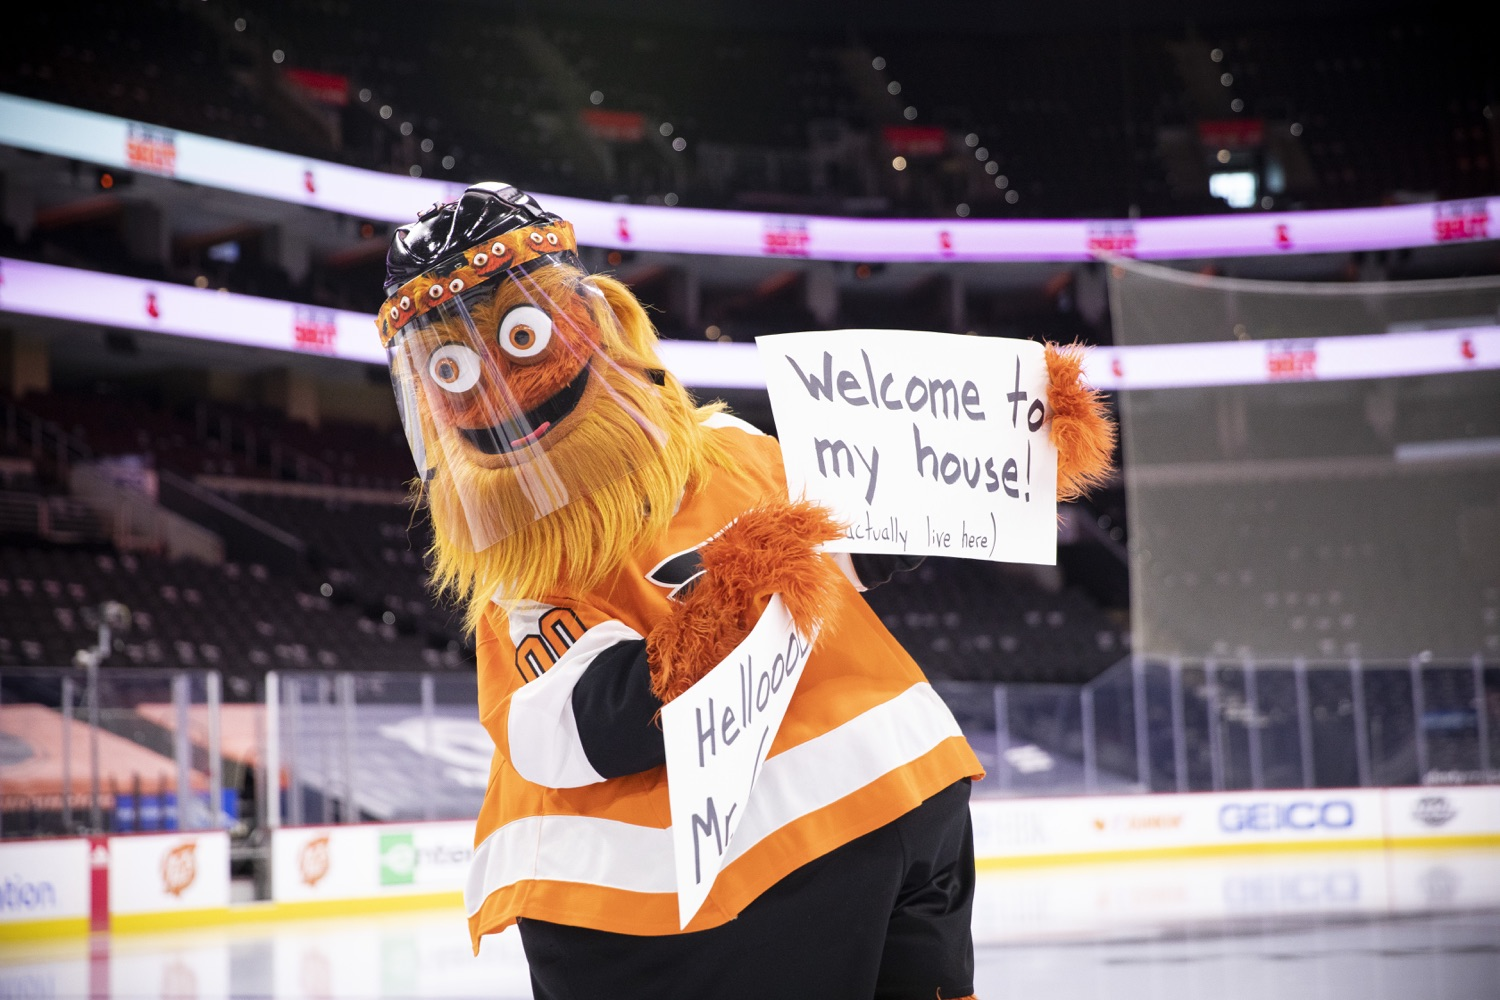 """<a href=""""https://filesource.wostreaming.net/commonwealthofpa/photo/18727_gov_vaccines_dz_008.jpg"""" target=""""_blank"""">⇣Download Photo<br></a>Philadelphia Flyers' mascot Gritty at the press conference.   Governor Tom Wolf today visited the Philadelphia Flyers organization at the Wells Fargo Center in Philadelphia to discuss COVID-19 vaccine efforts in Pennsylvania. The Flyers recently launched a comprehensive COVID-19 vaccine campaign, Take Your Shot, encouraging Pennsylvanians to get vaccinated.  Philadelphia, PA  MAY 3, 2021"""